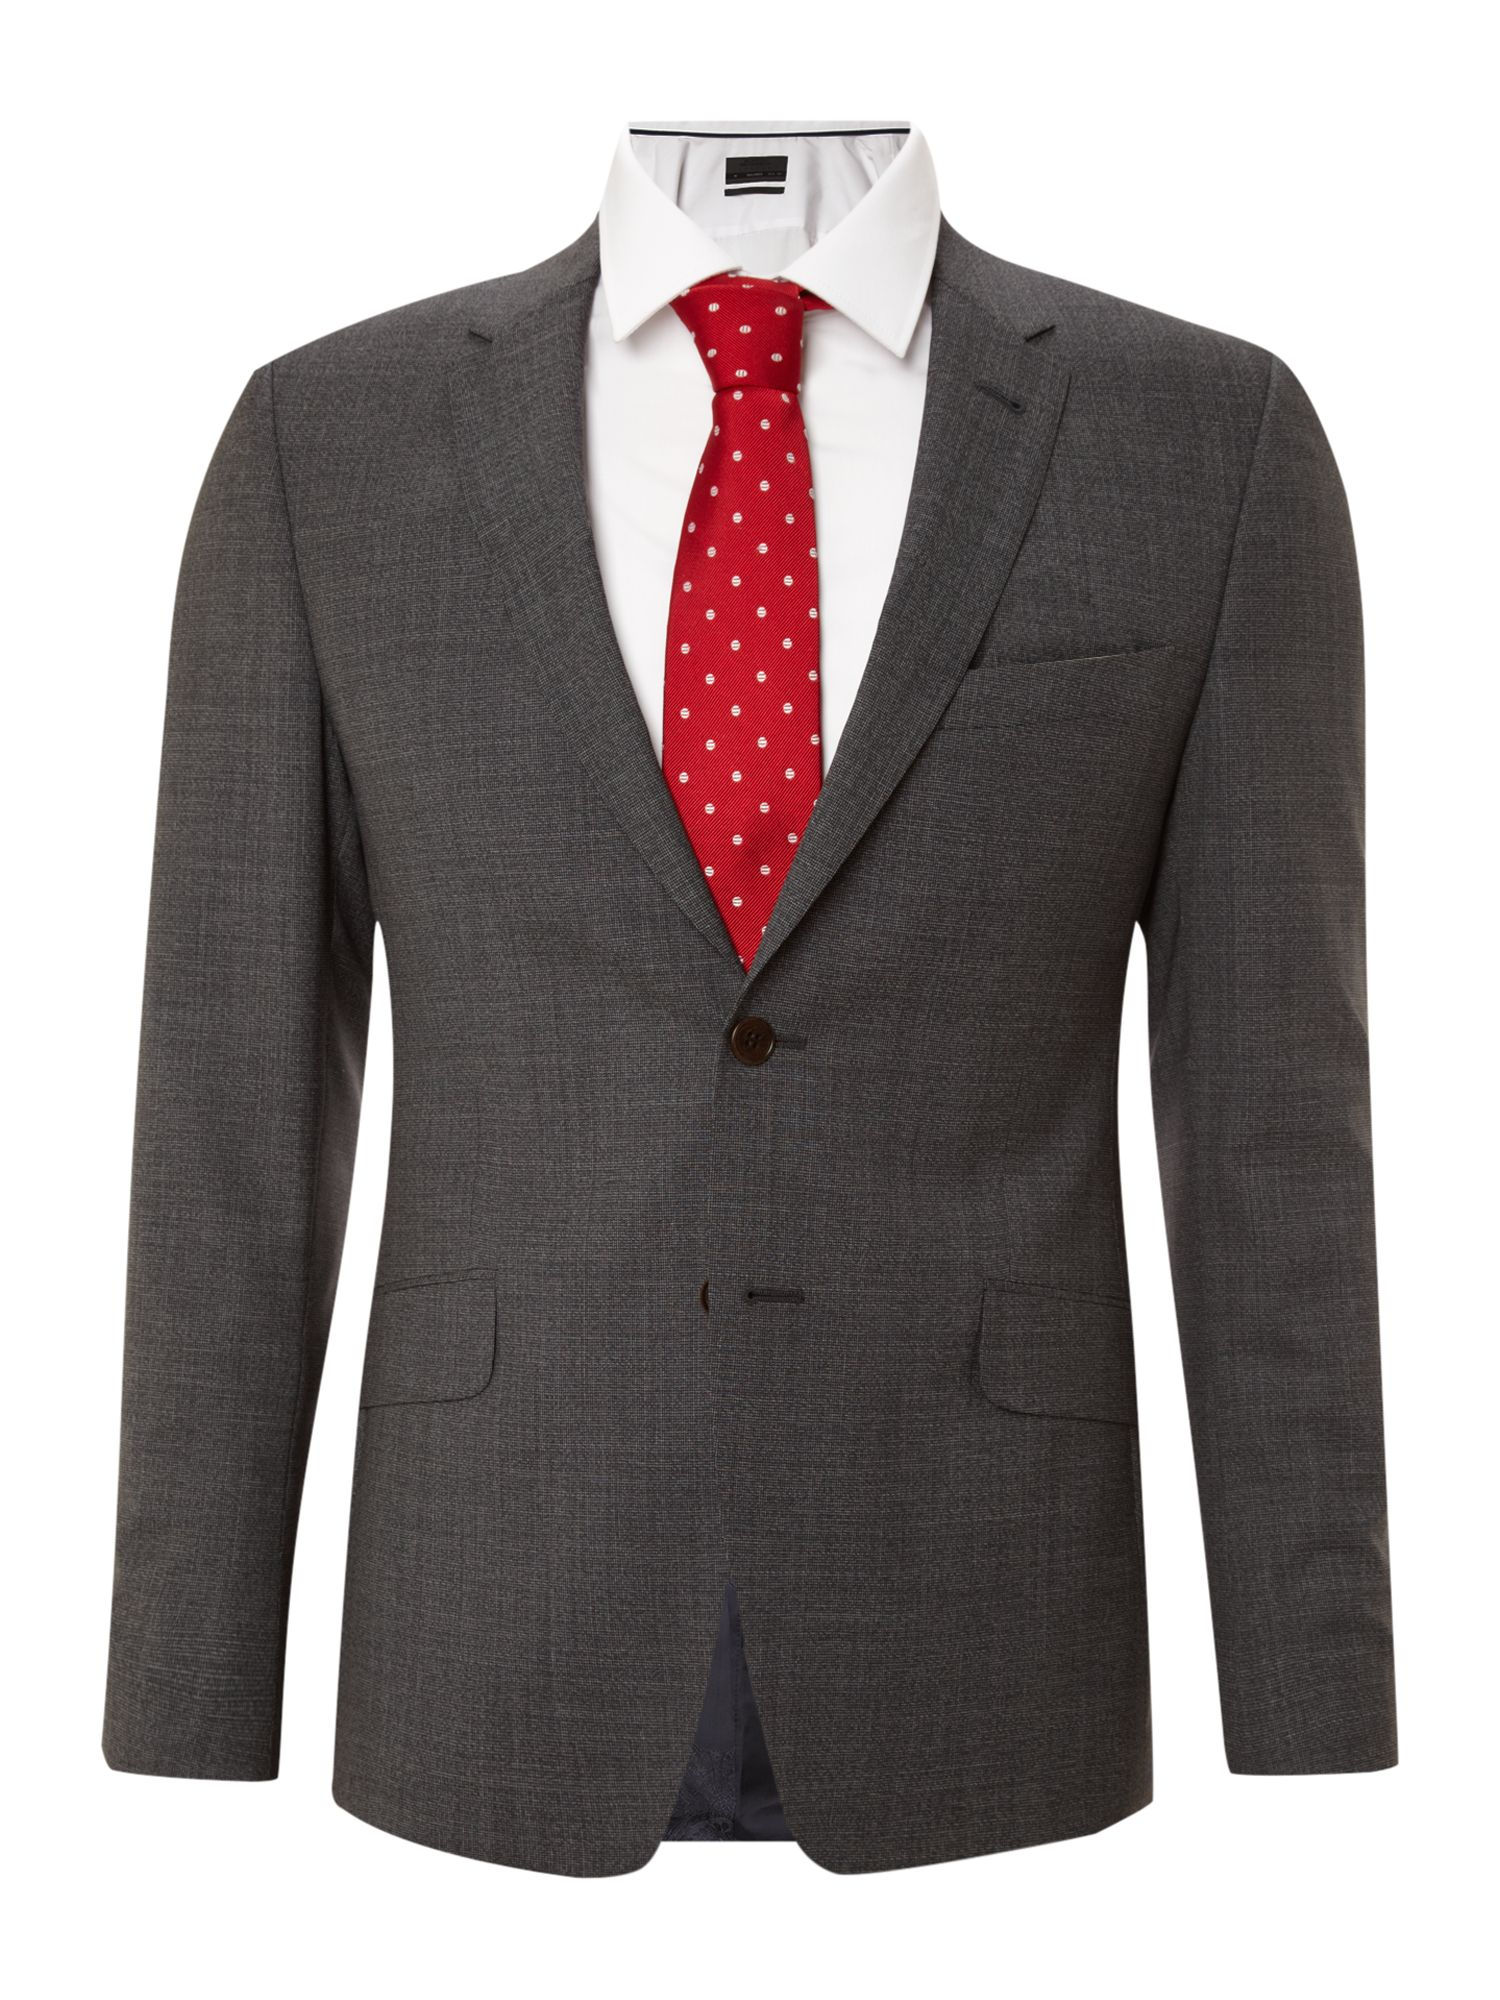 Regent super slim cross hatch suit